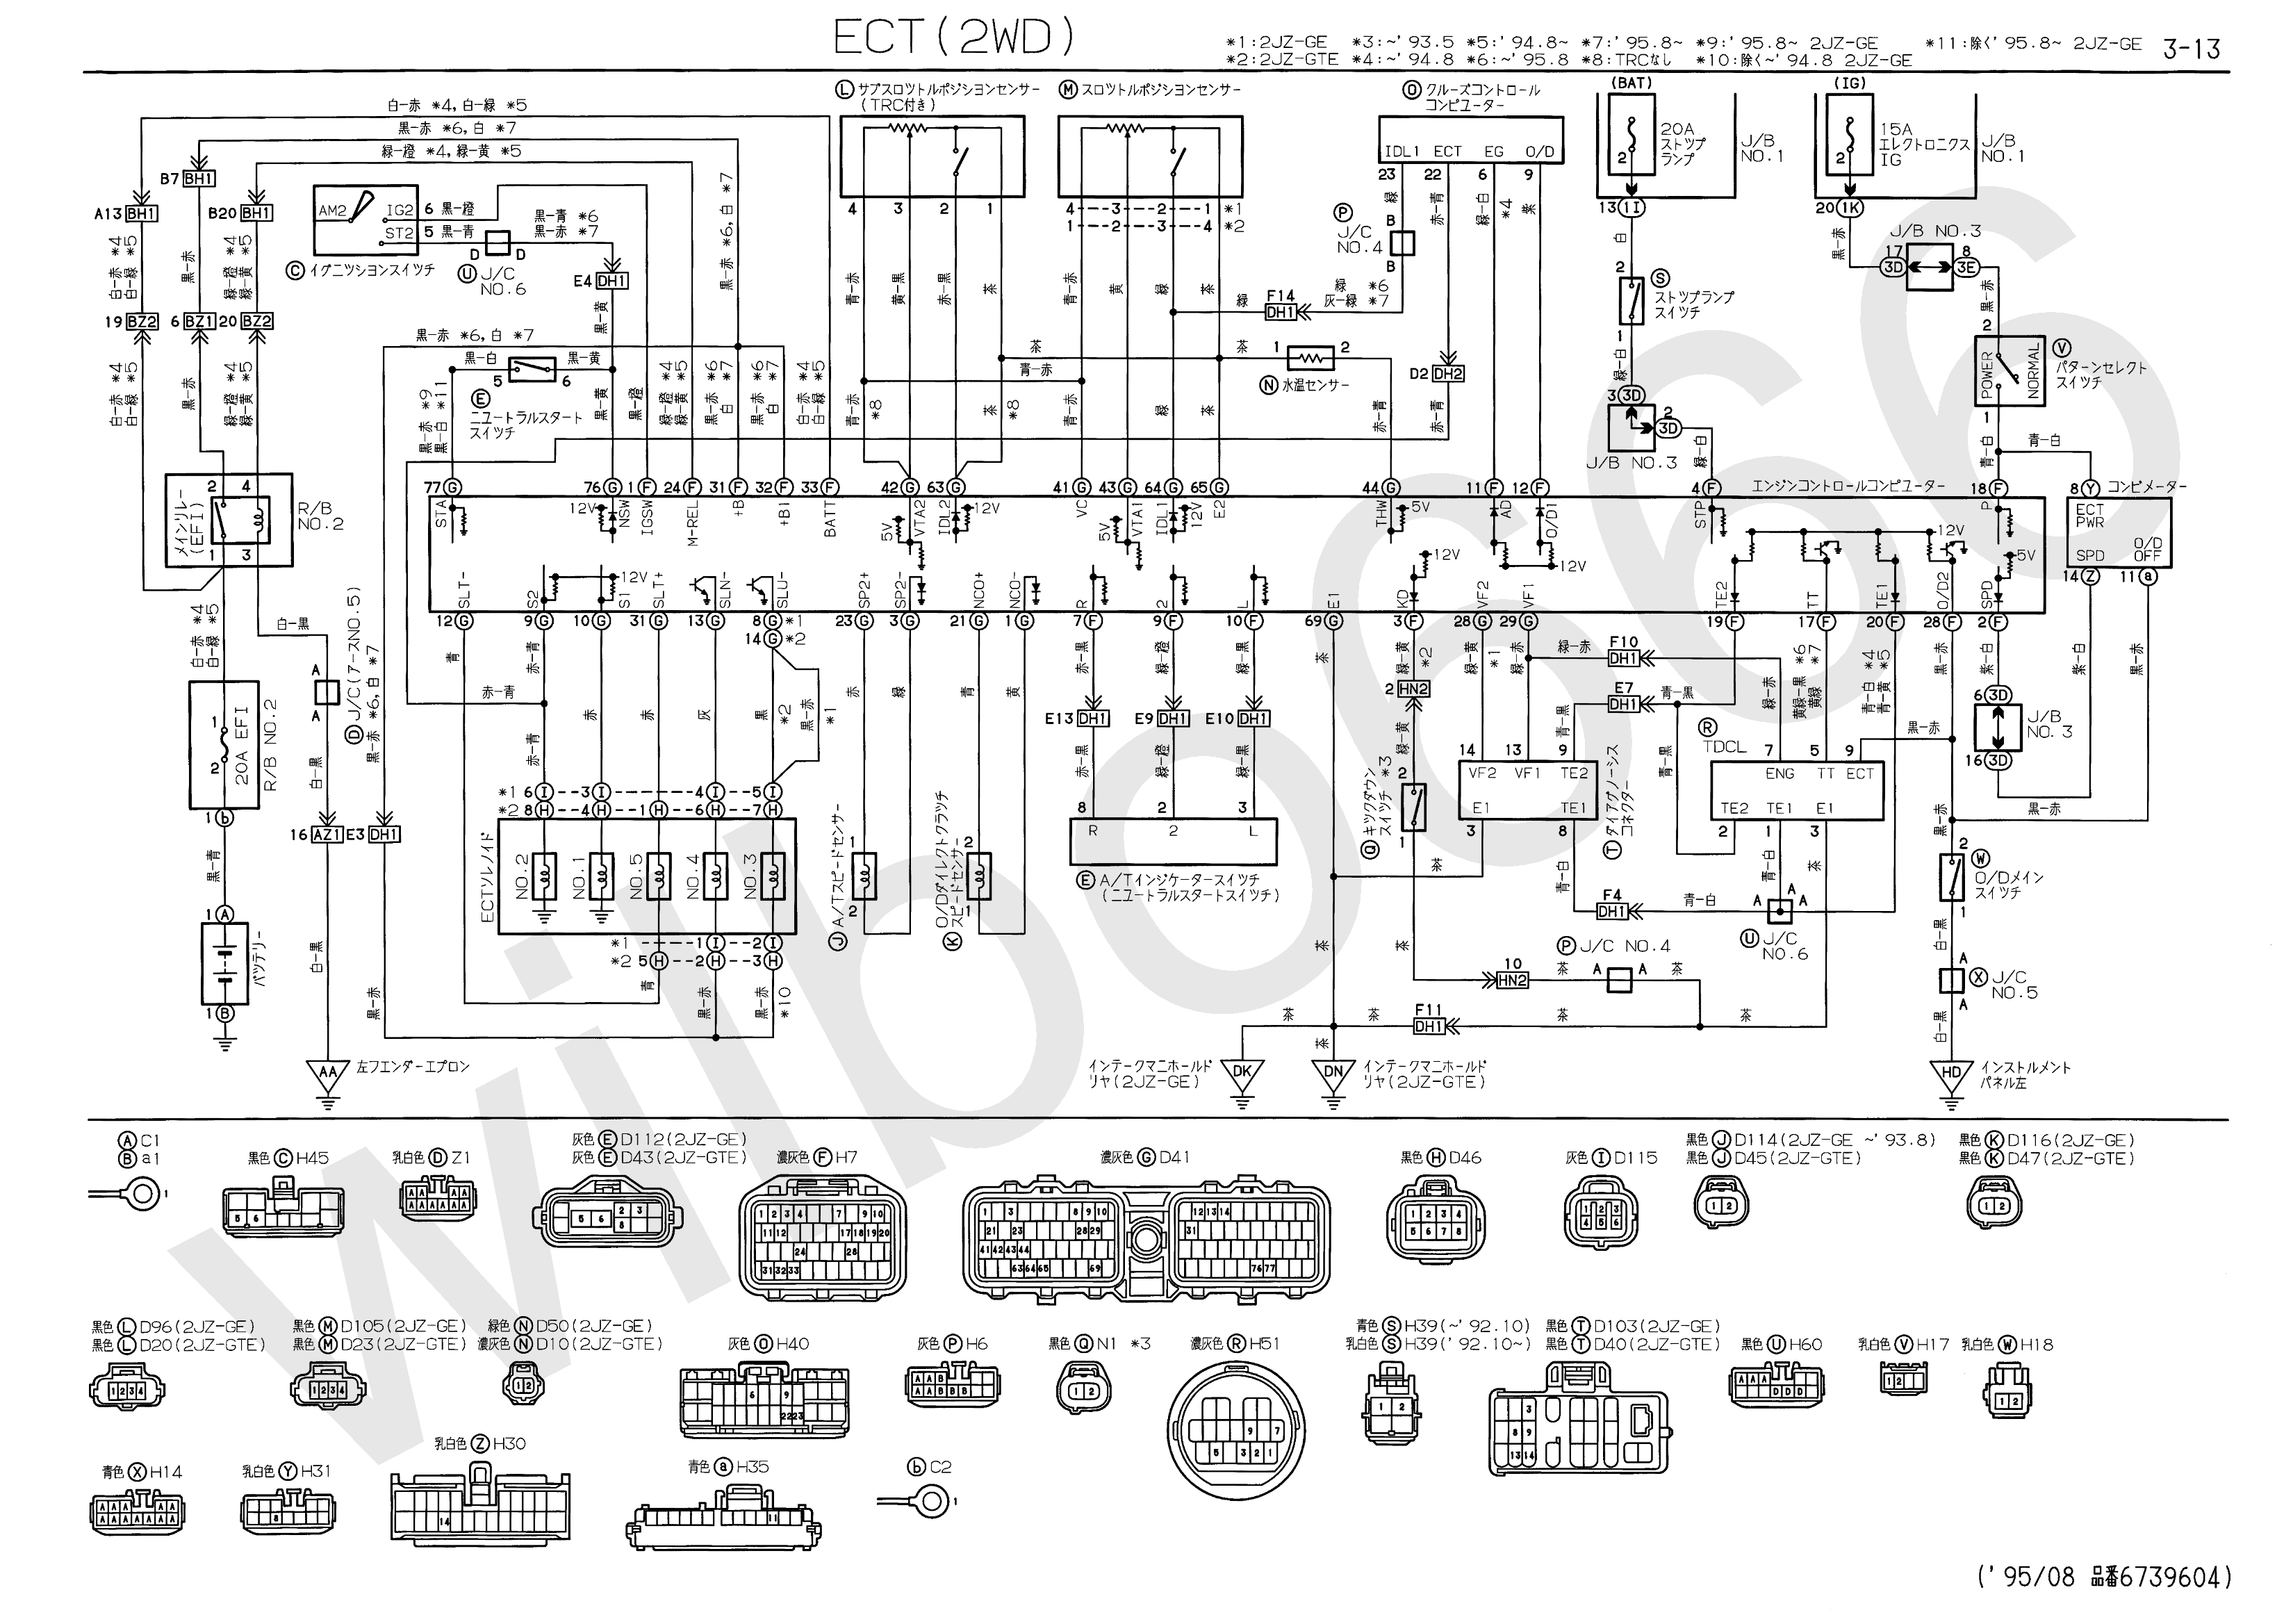 Wilbo666 2jz Gte Jzs147 Aristo Engine Wiring Diagram Of Electronic Clock Toyota Nsw Sta